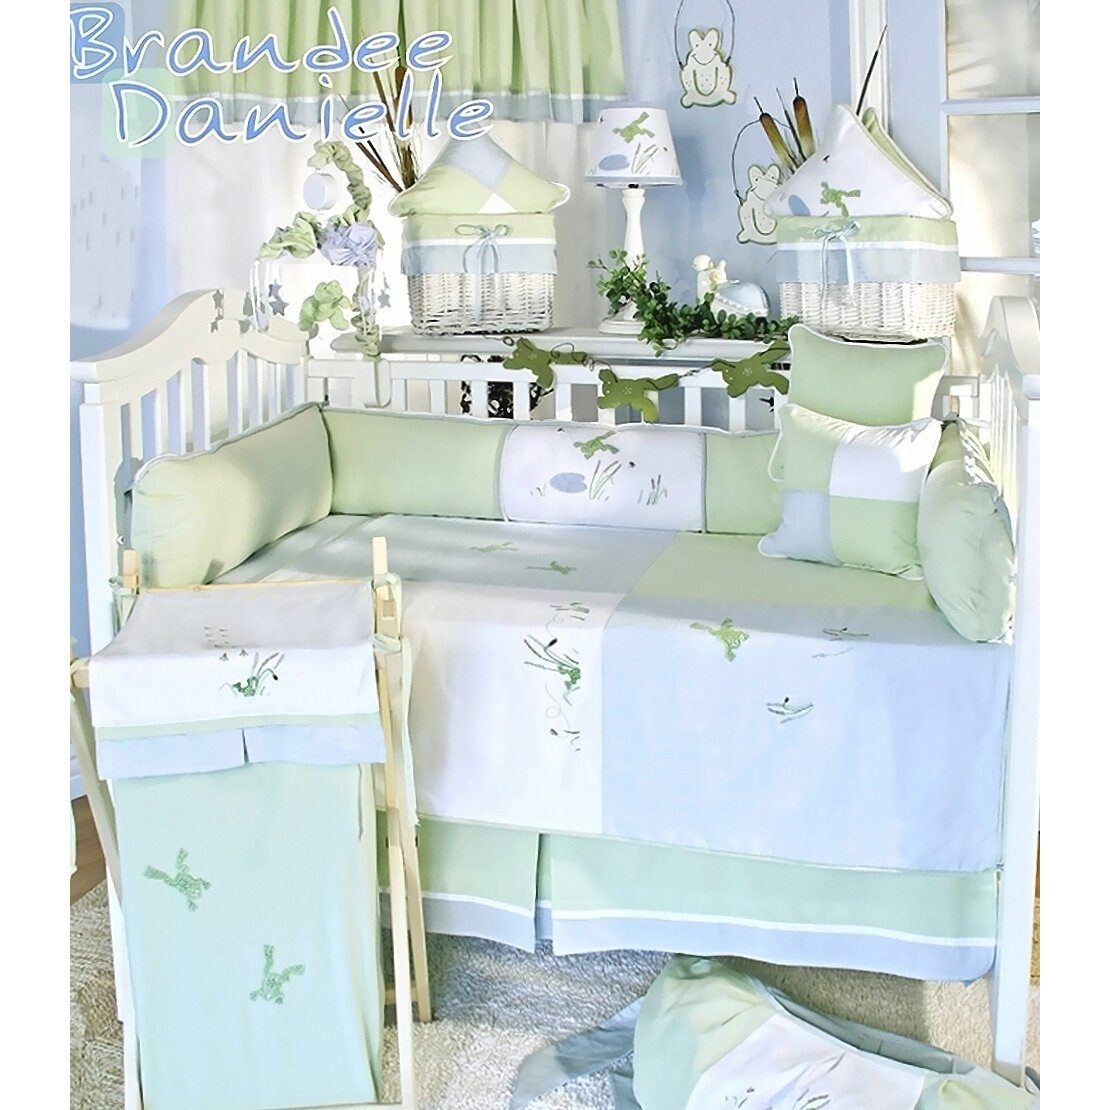 brandee danielle - brandee danielle one little froggie dust ruffle wayfair